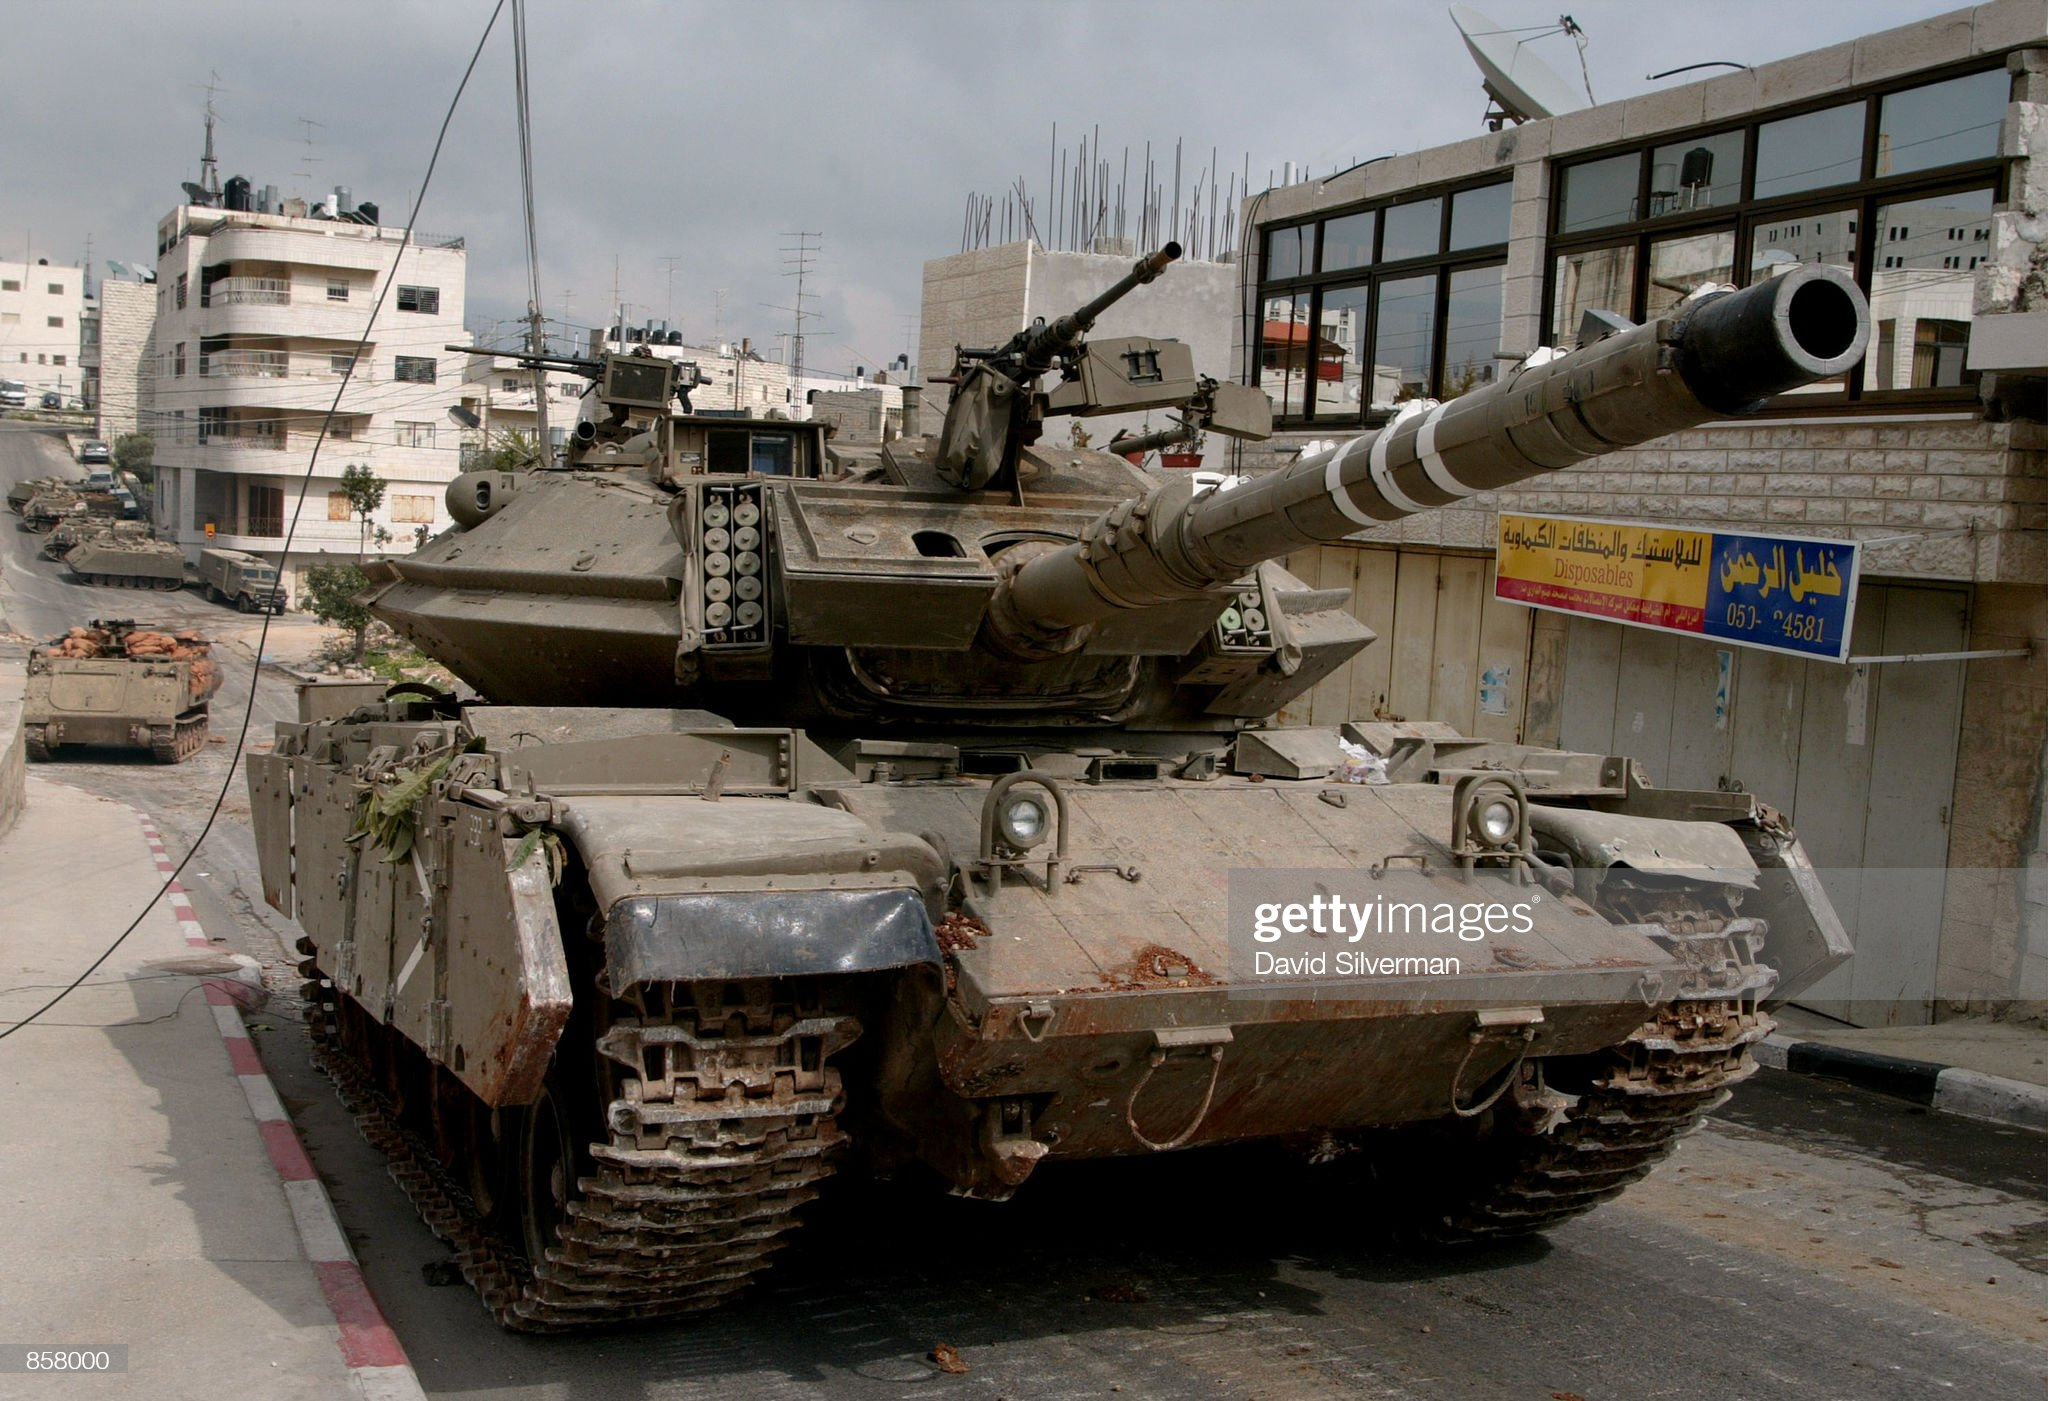 https://media.gettyimages.com/photos/an-israeli-tank-advances-up-a-residential-street-during-fighting-with-picture-id858000?s=2048x2048